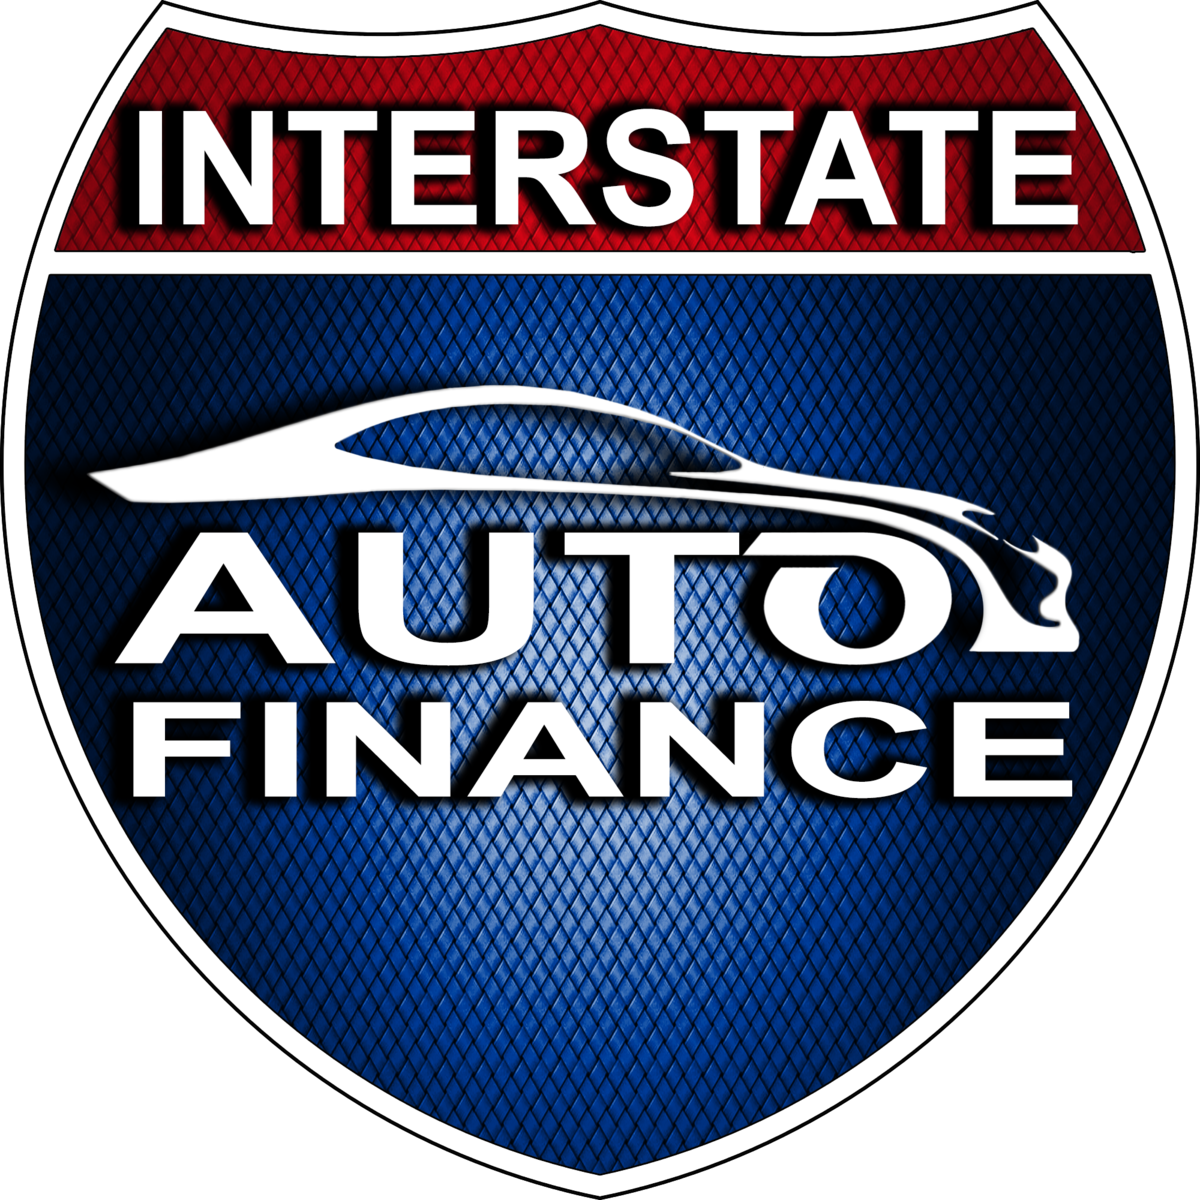 Interstate Auto Finance Llc Fredericksburg Va Read